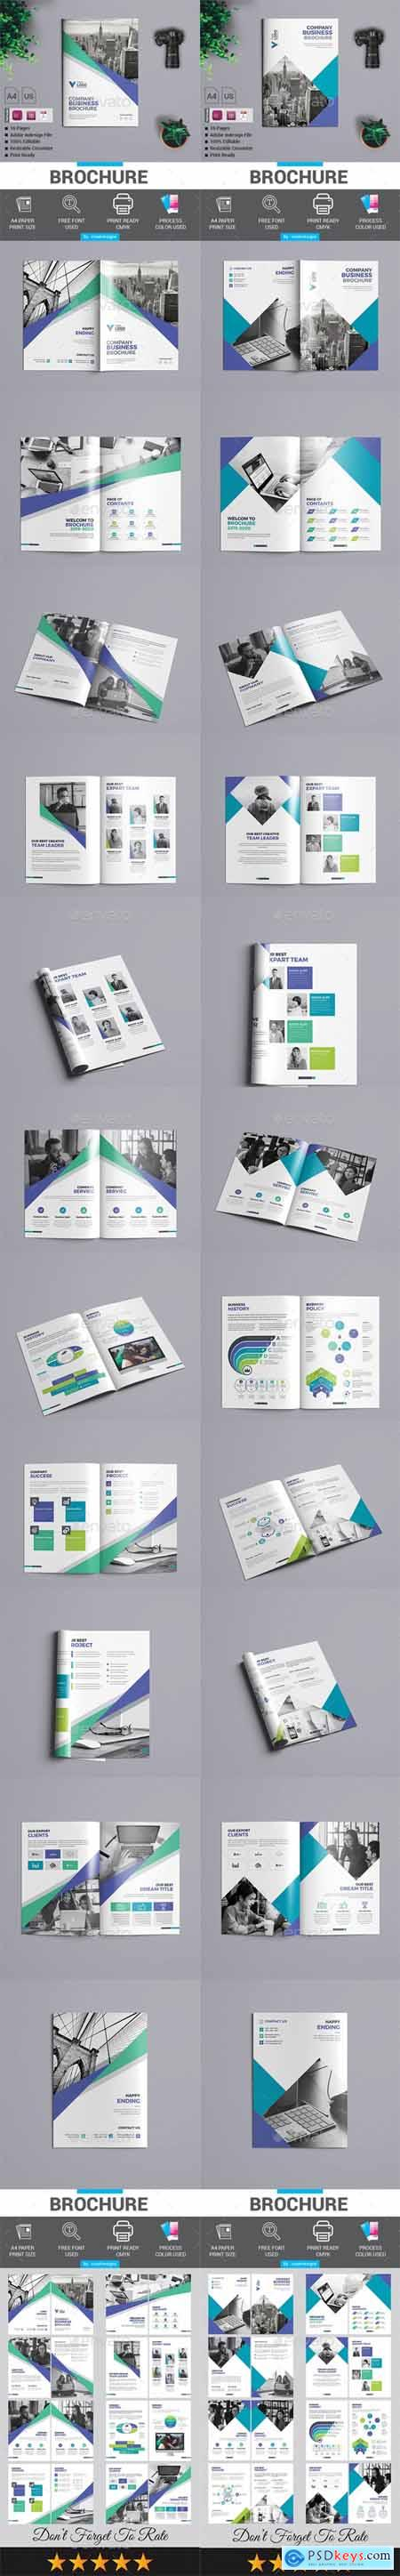 Graphicriver Brochure Bundle 2 in 1